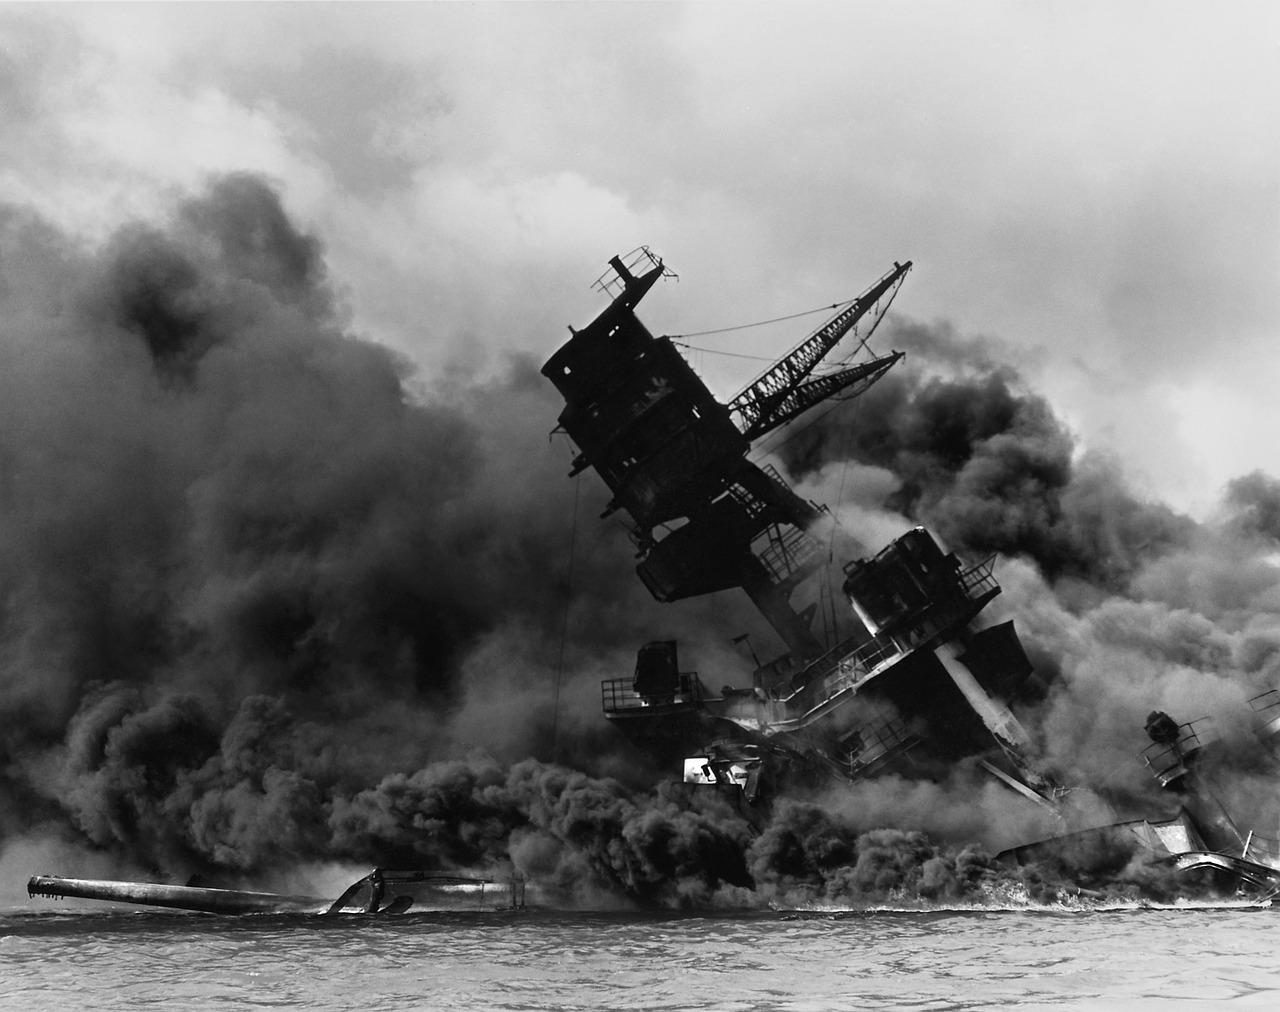 Japan's greatest aircraft carrier was sank by a tiny sub